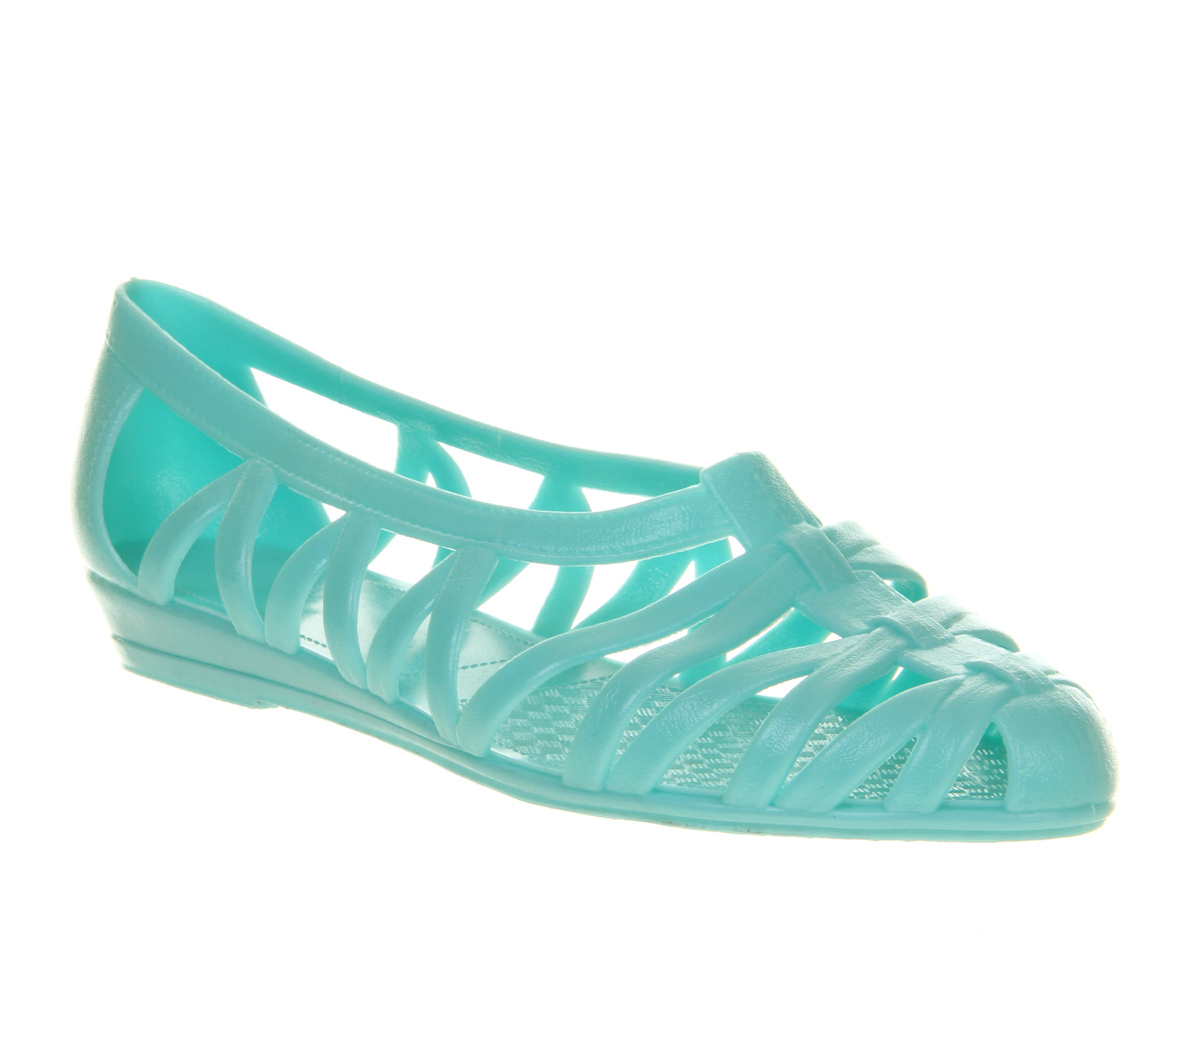 Jelly Shoes Womens Size